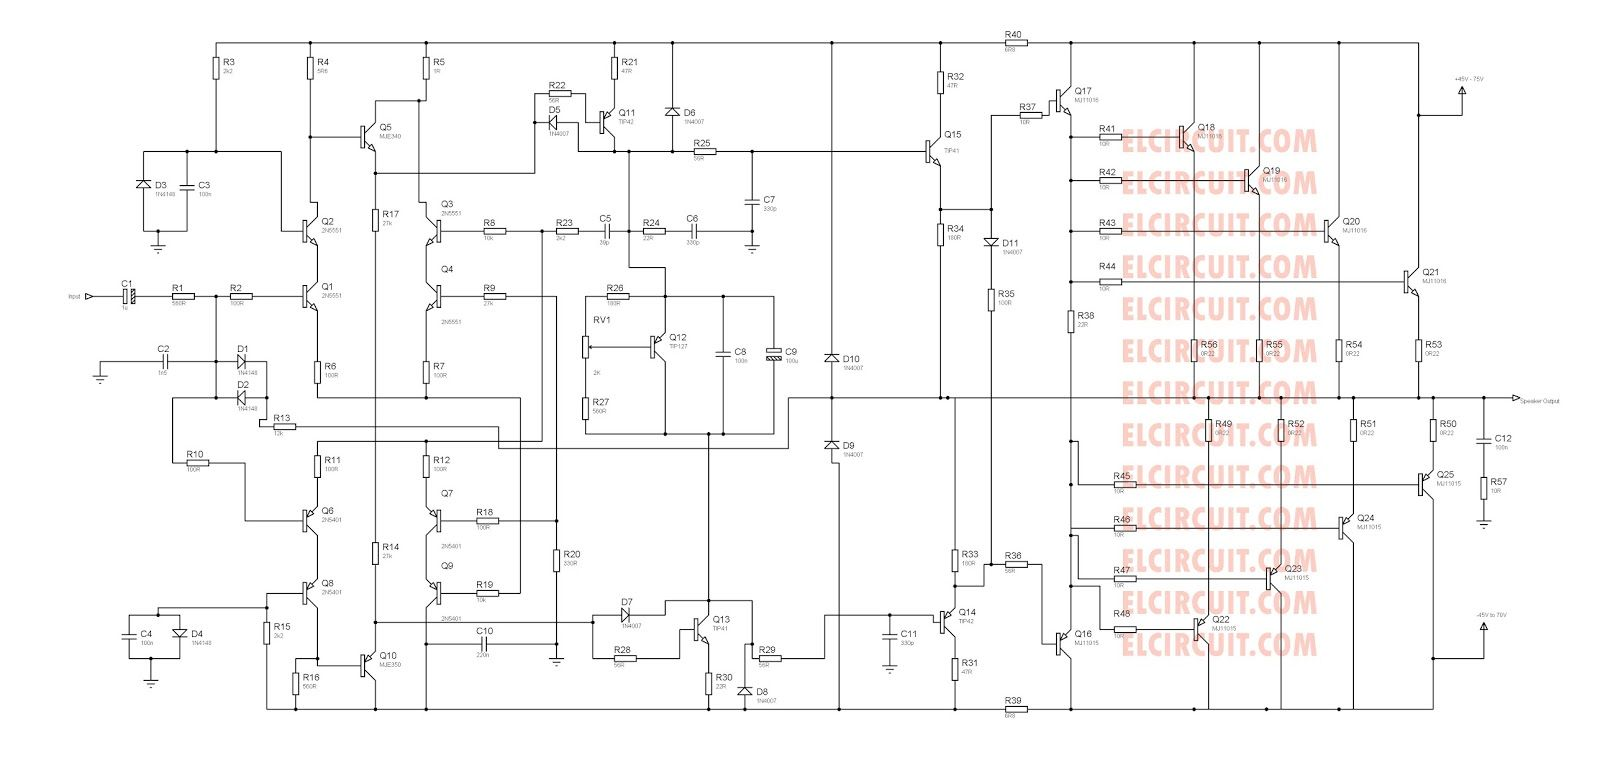 2800w High Power Amplifier Circuit Updated 2018 2000w Amp Ocl Using Sanken Pa Schematic Diagram